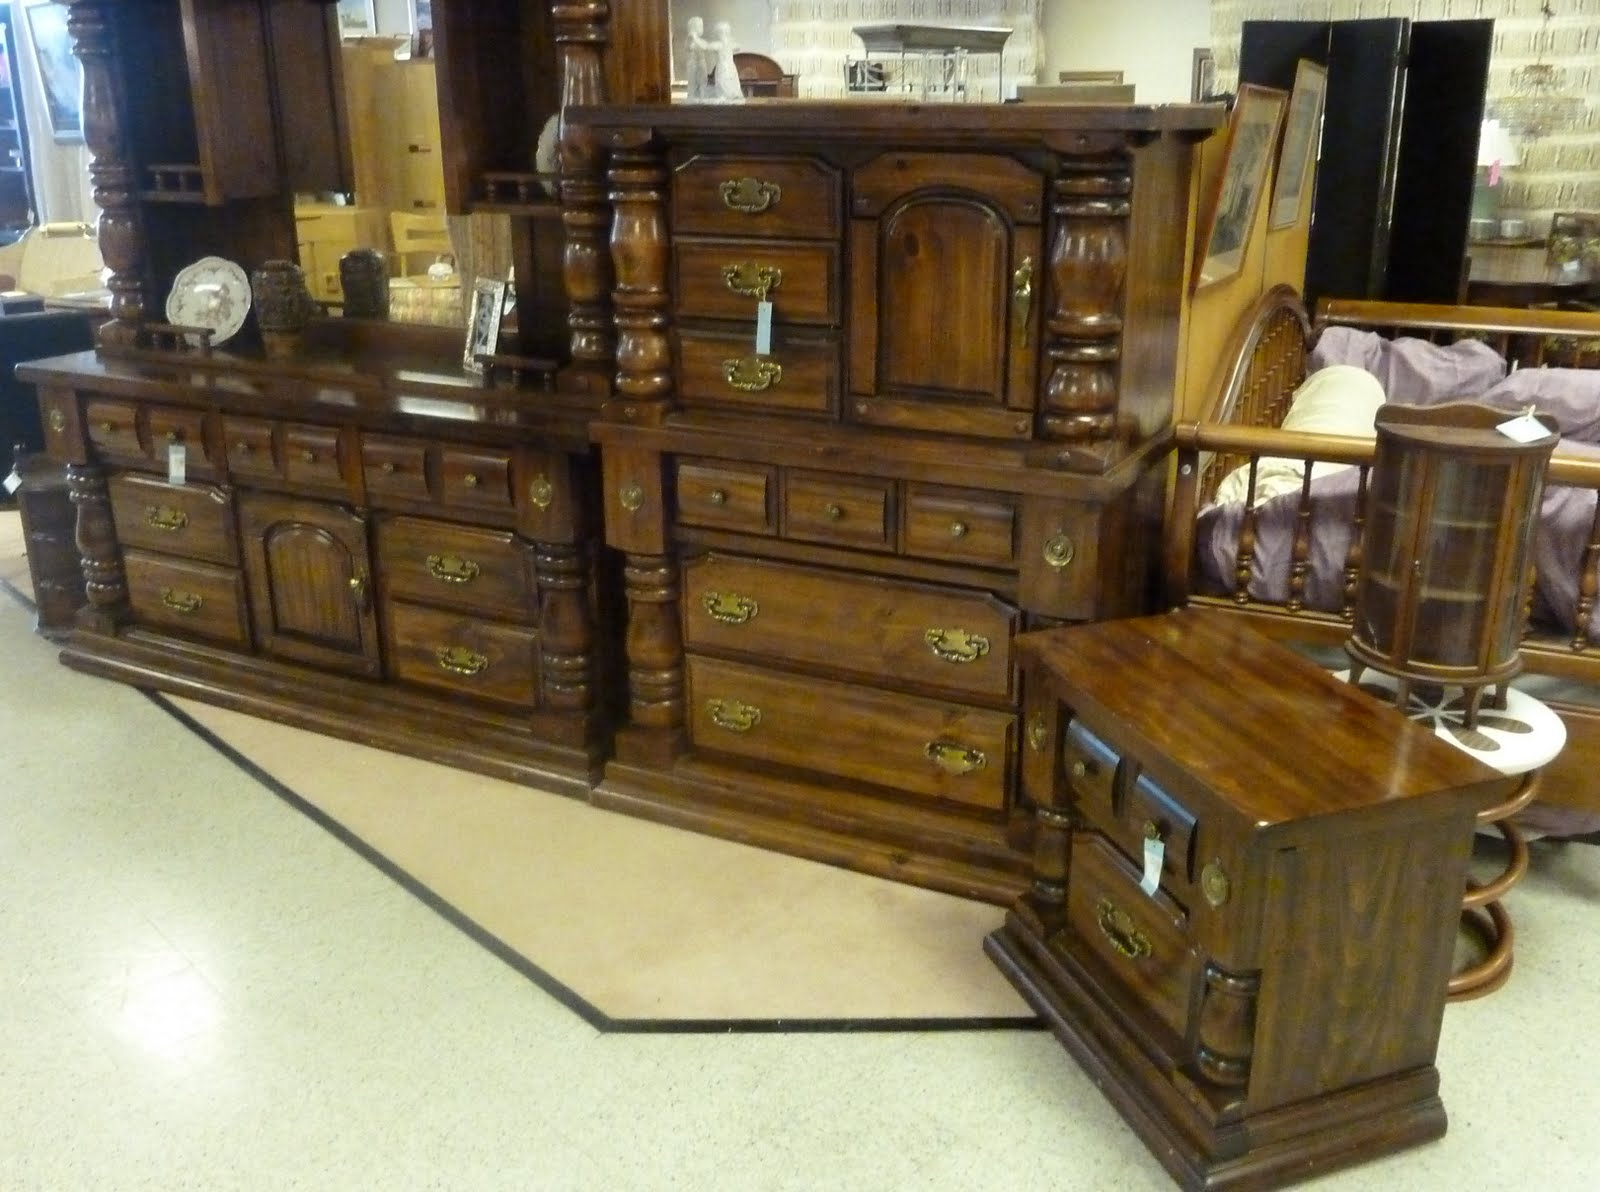 Recalling The Colonial Furniture Of The Early 1970s